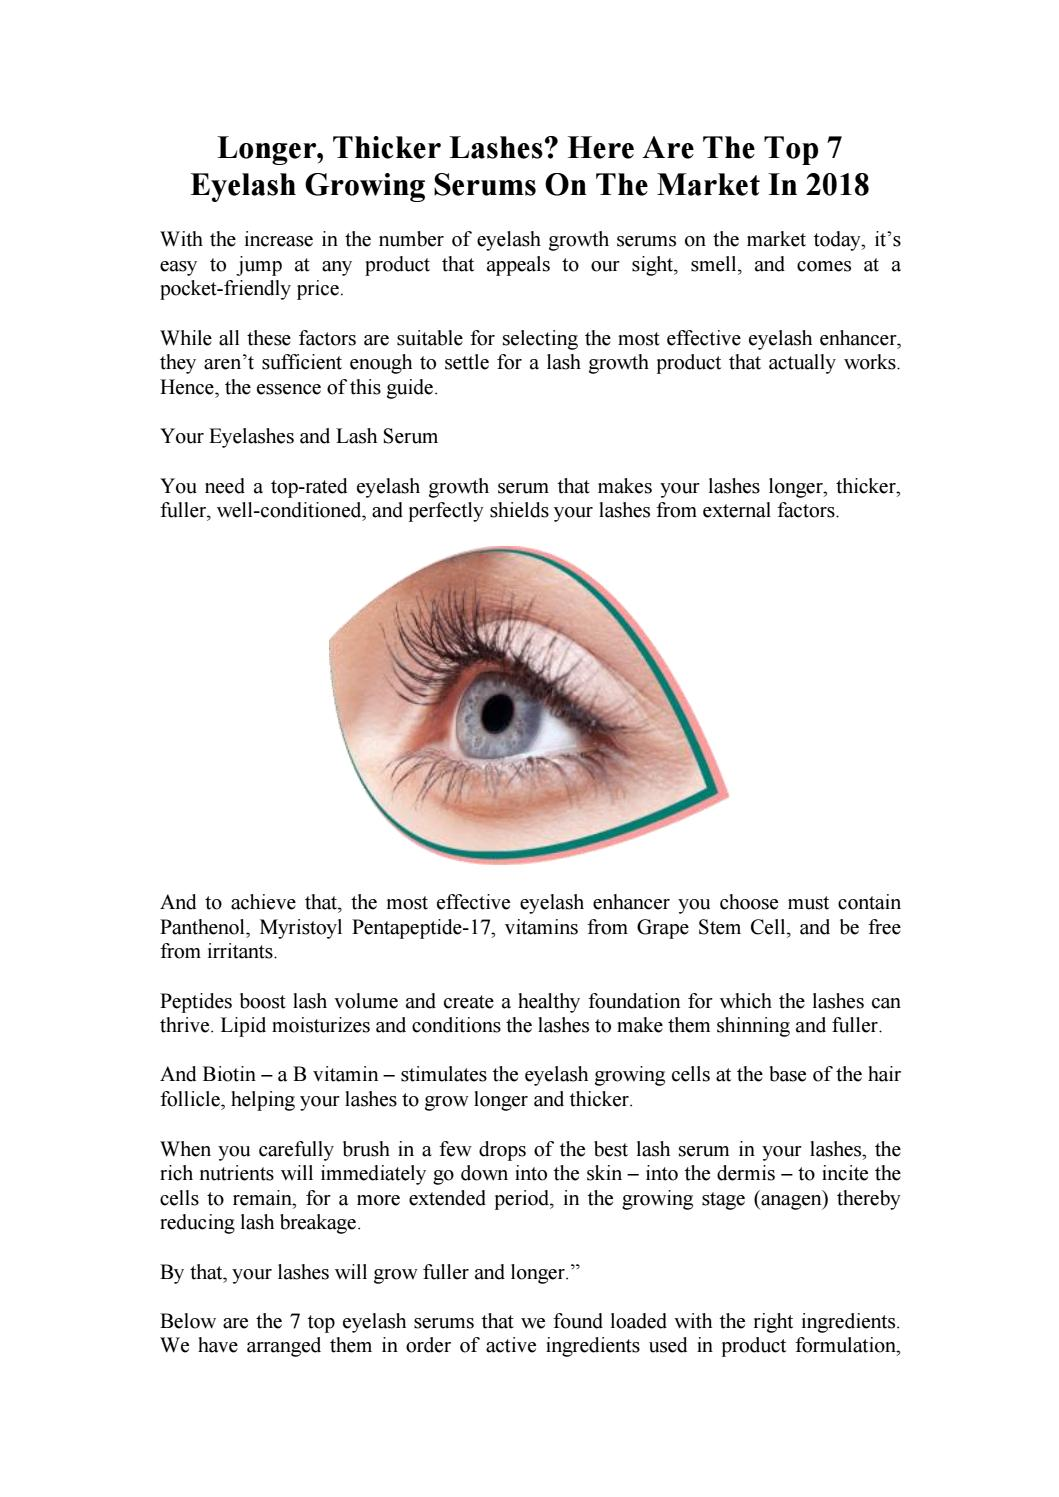 Longer Thicker Lashes Here Are The Top 7 Eyelash Growing Serums On